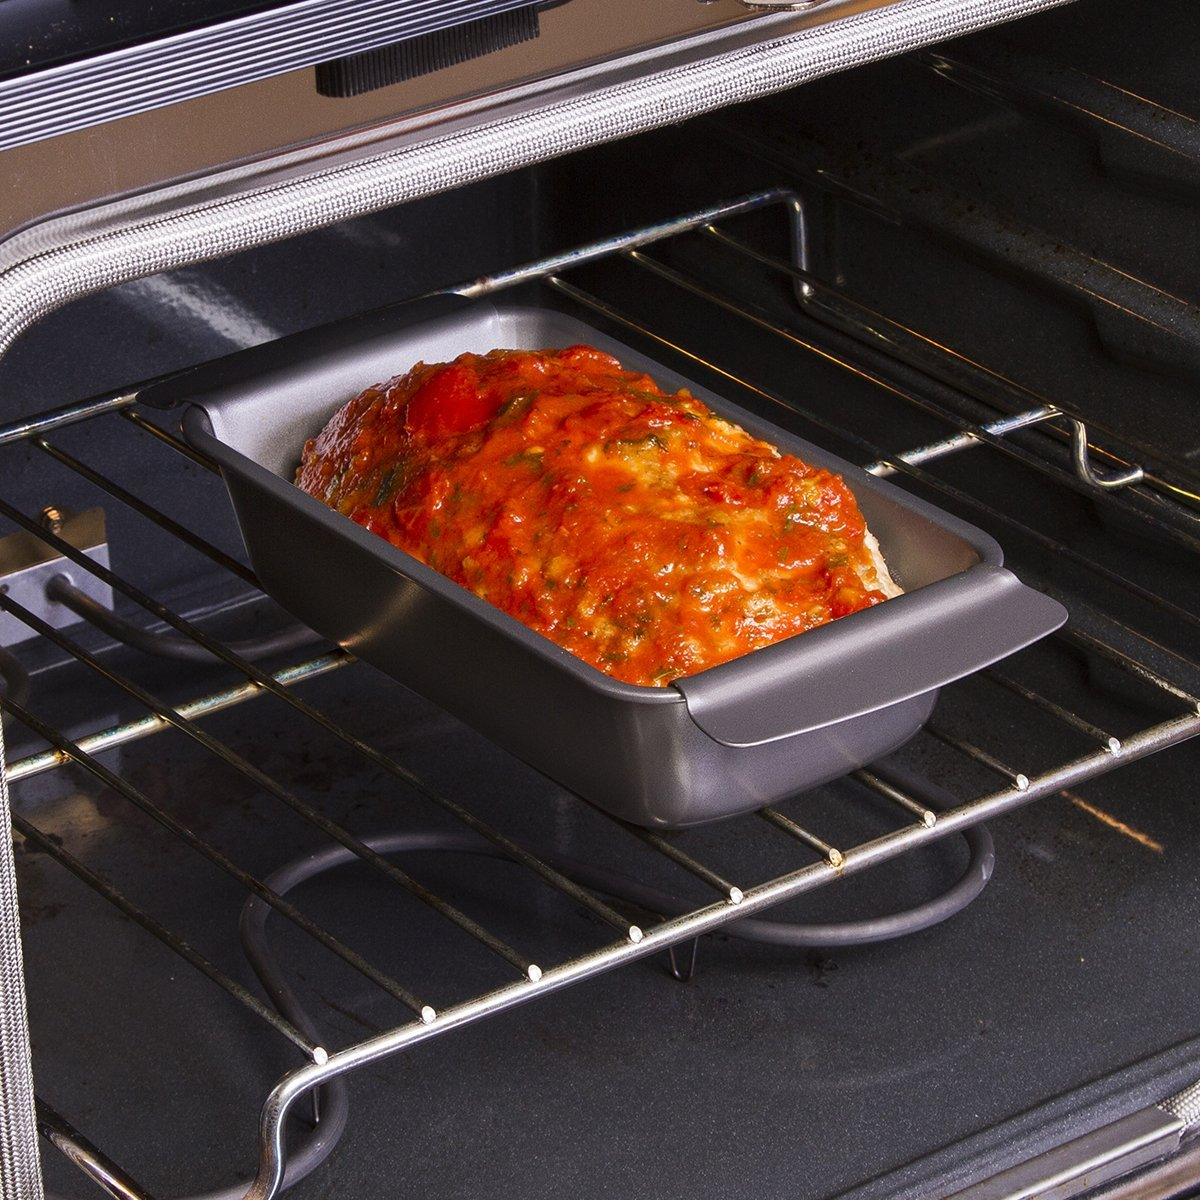 """Loaf Pan and Perforated Tray BPA Gray 9/"""" x 4.875/"""" x 2.5/"""" EIGY-7623 Ecolution Bakeins Healthy Meat Loaf Pan Set Dishwasher Safe PFOA and PTFE Free Non-Stick Coating Heavy Duty Carbon Steel"""